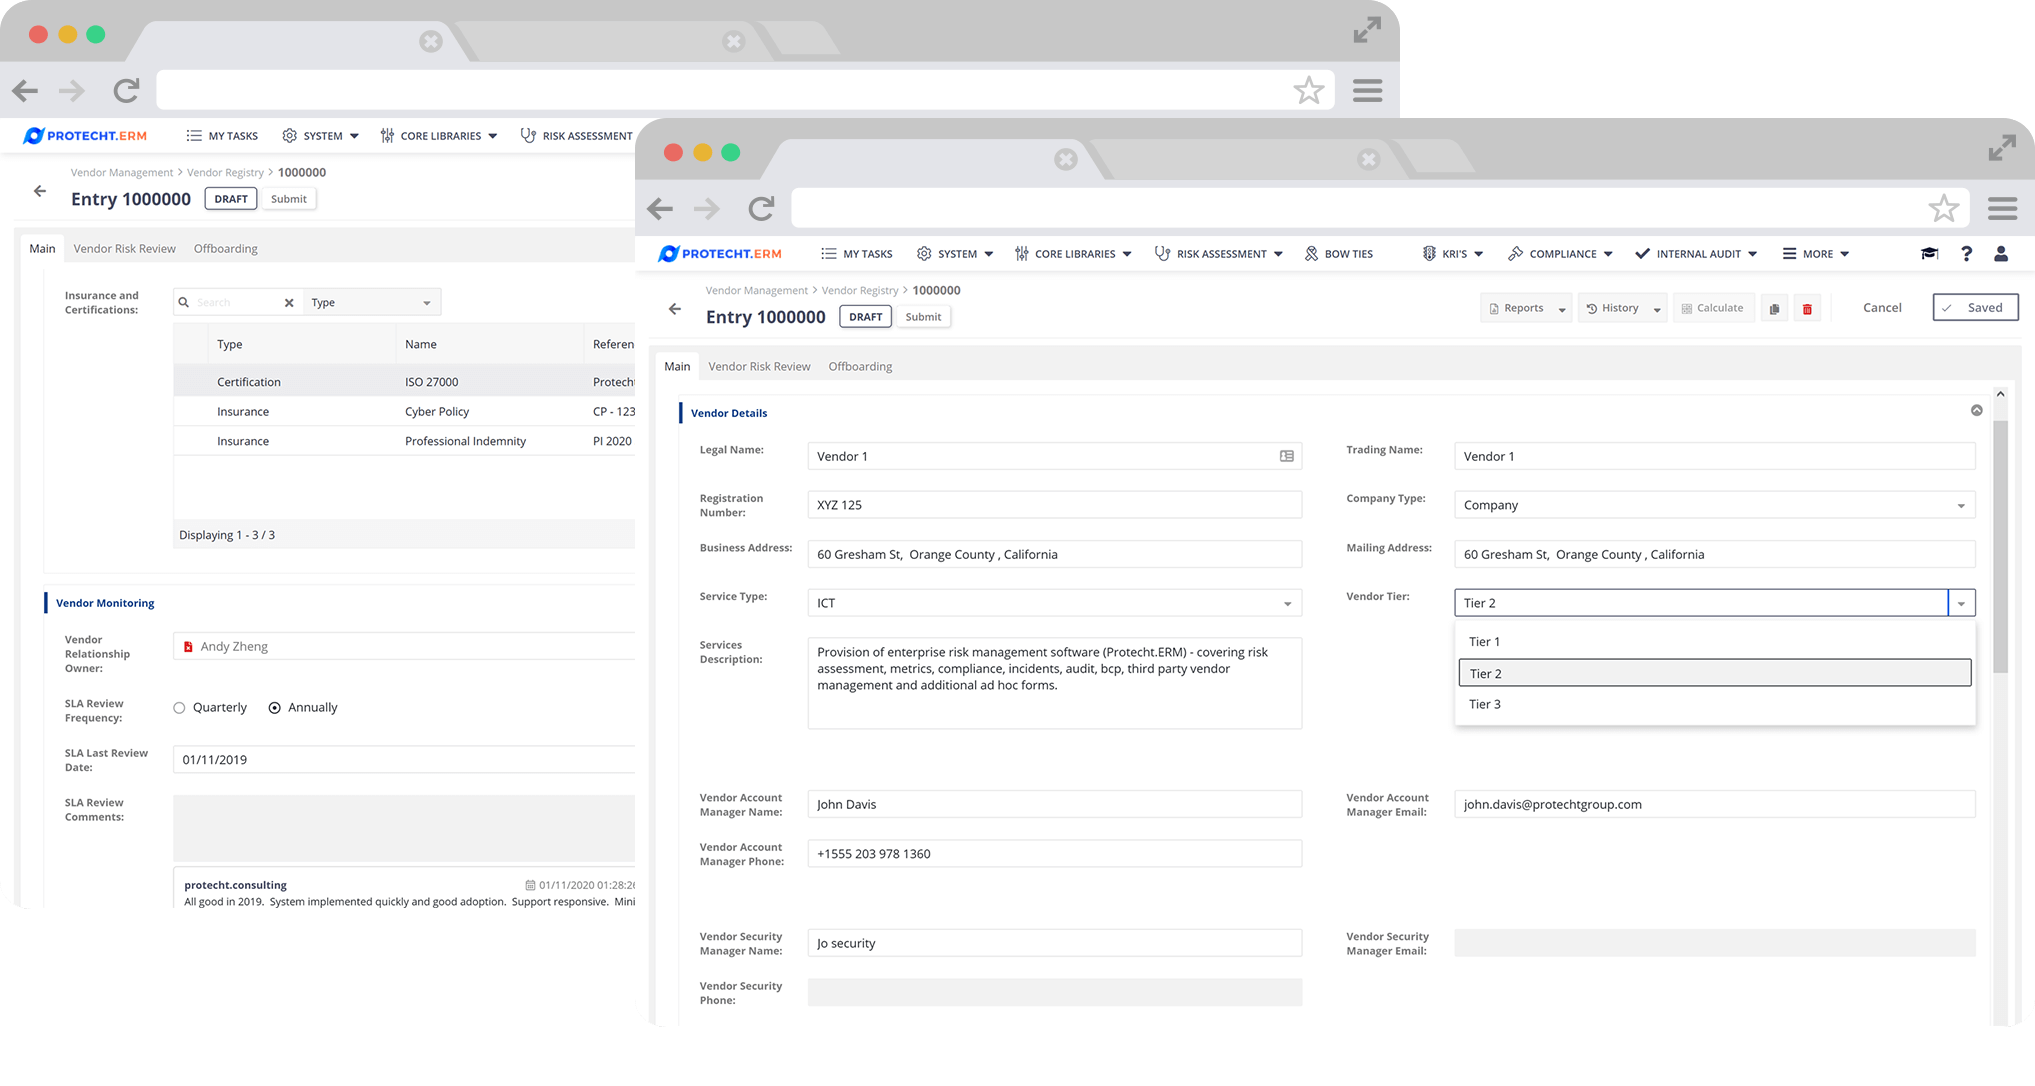 Direct access by vendors to registers